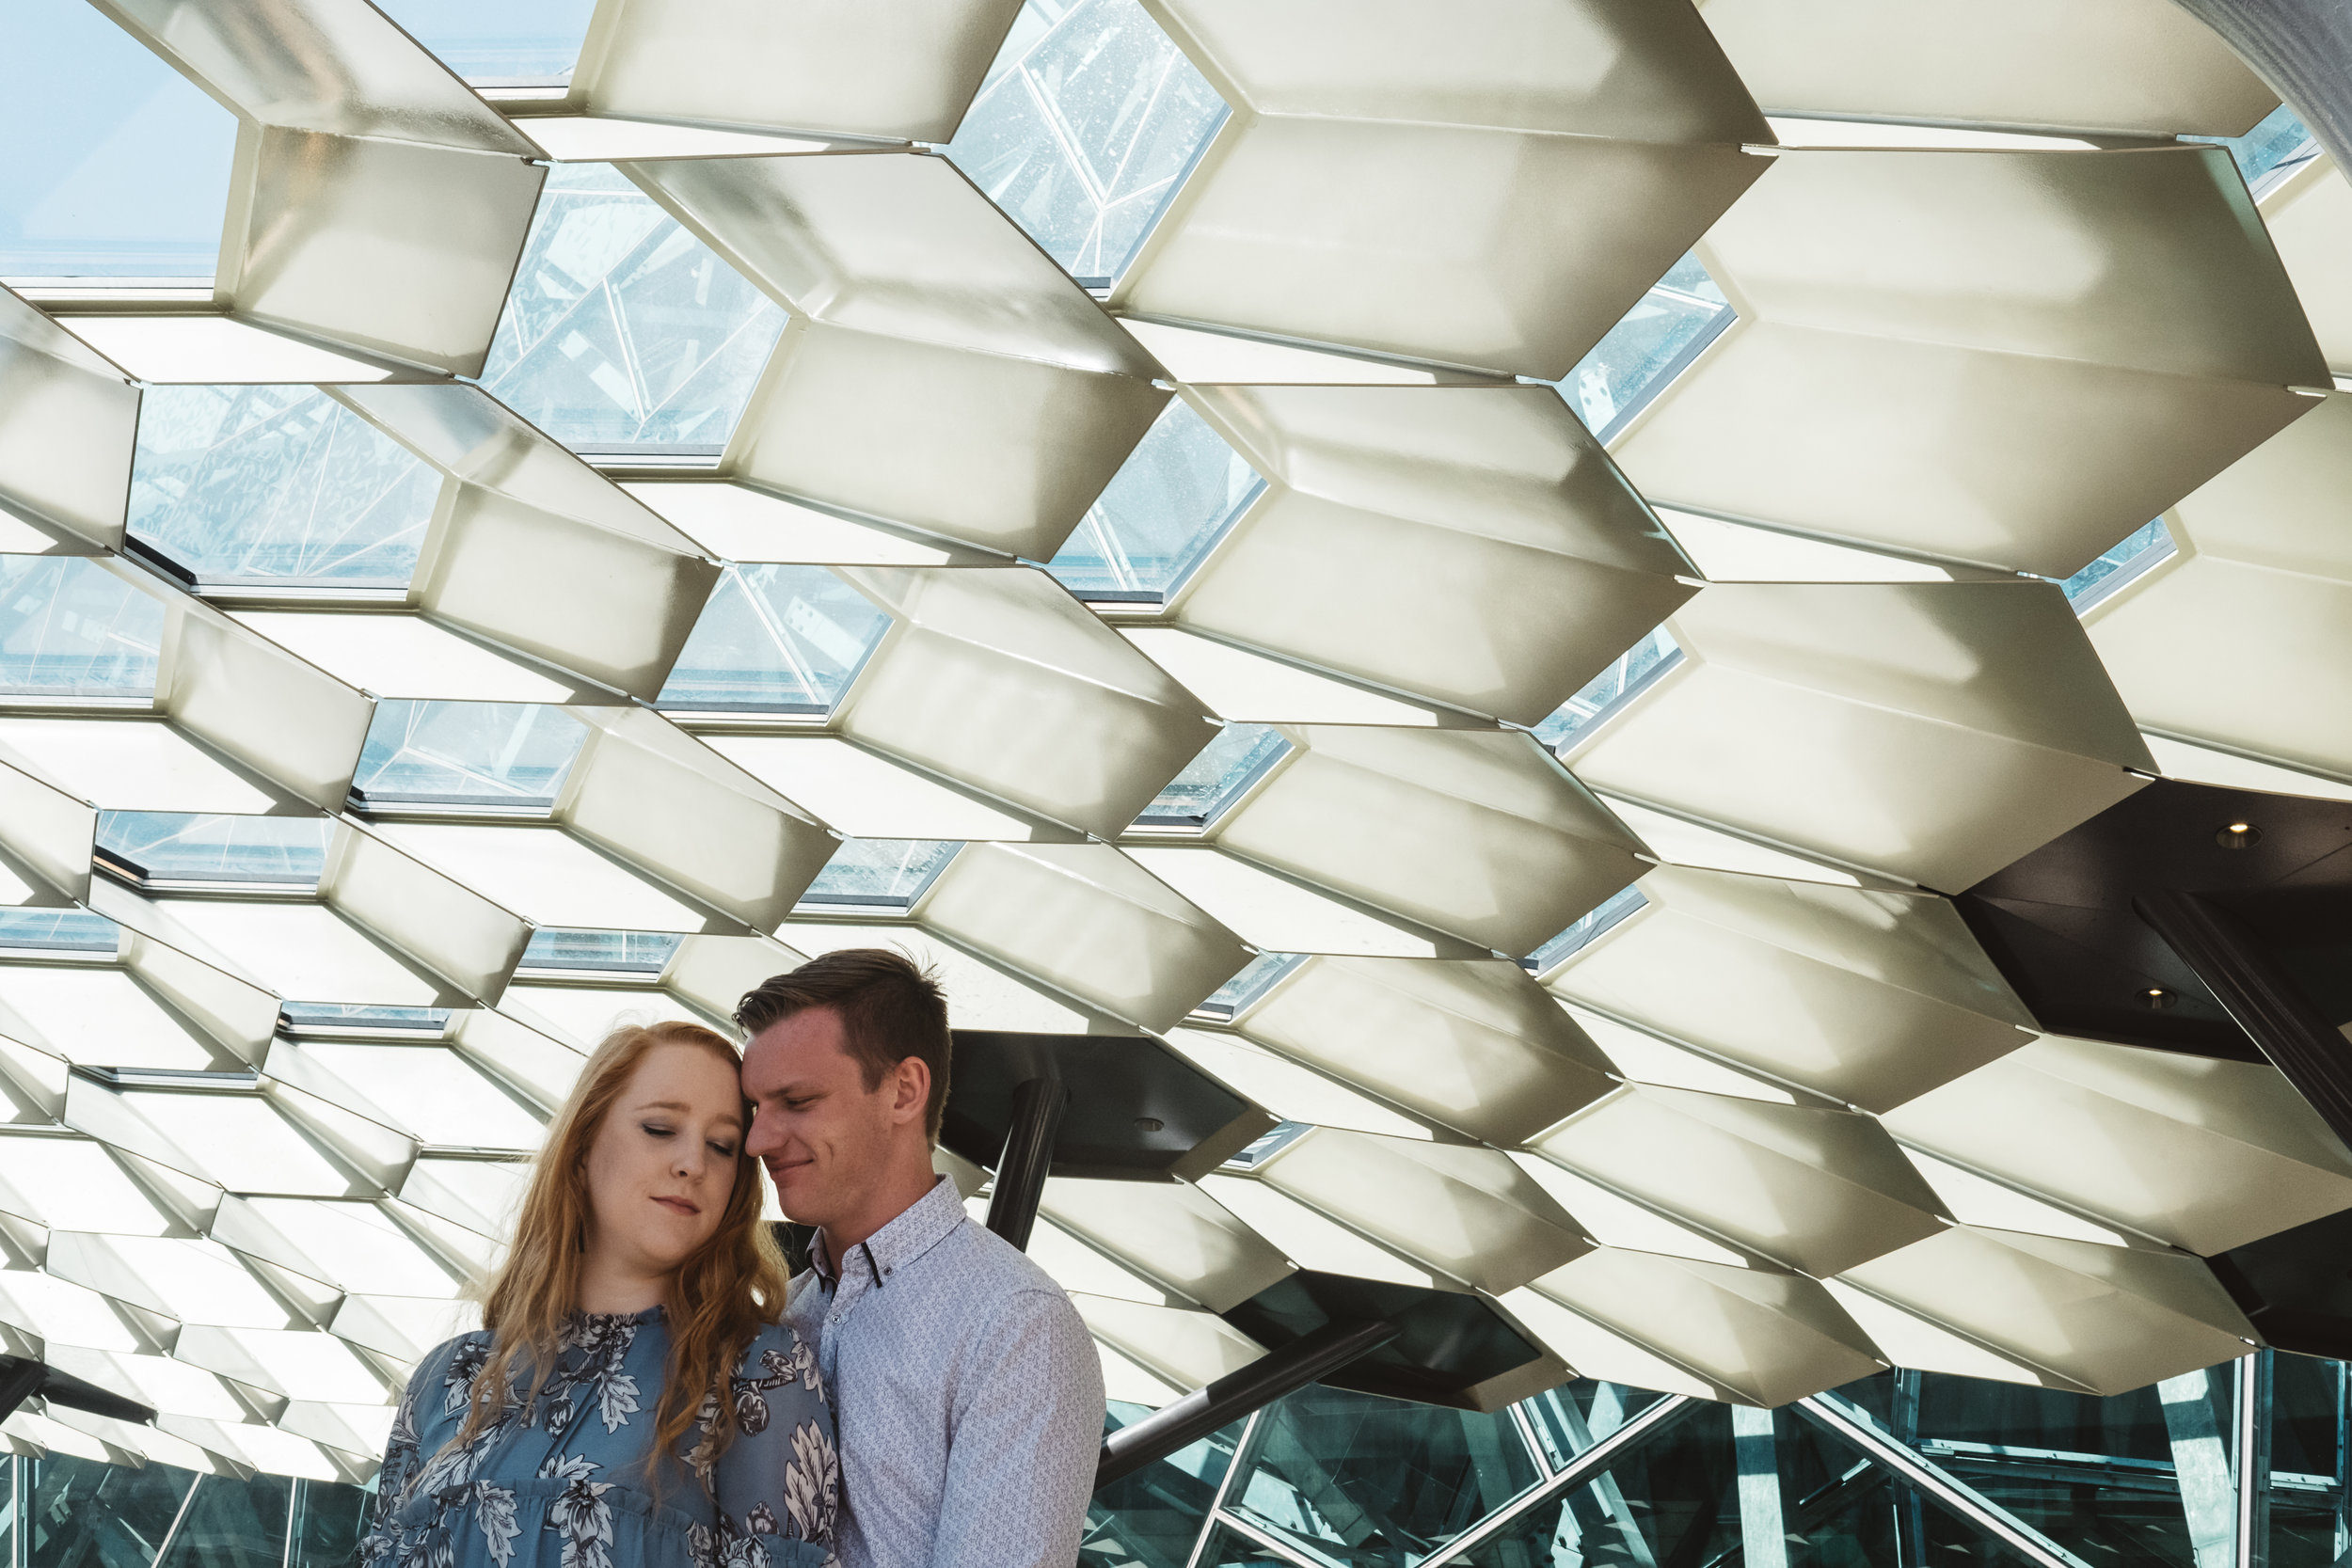 pre wedding photography in federation square melbourne cbd